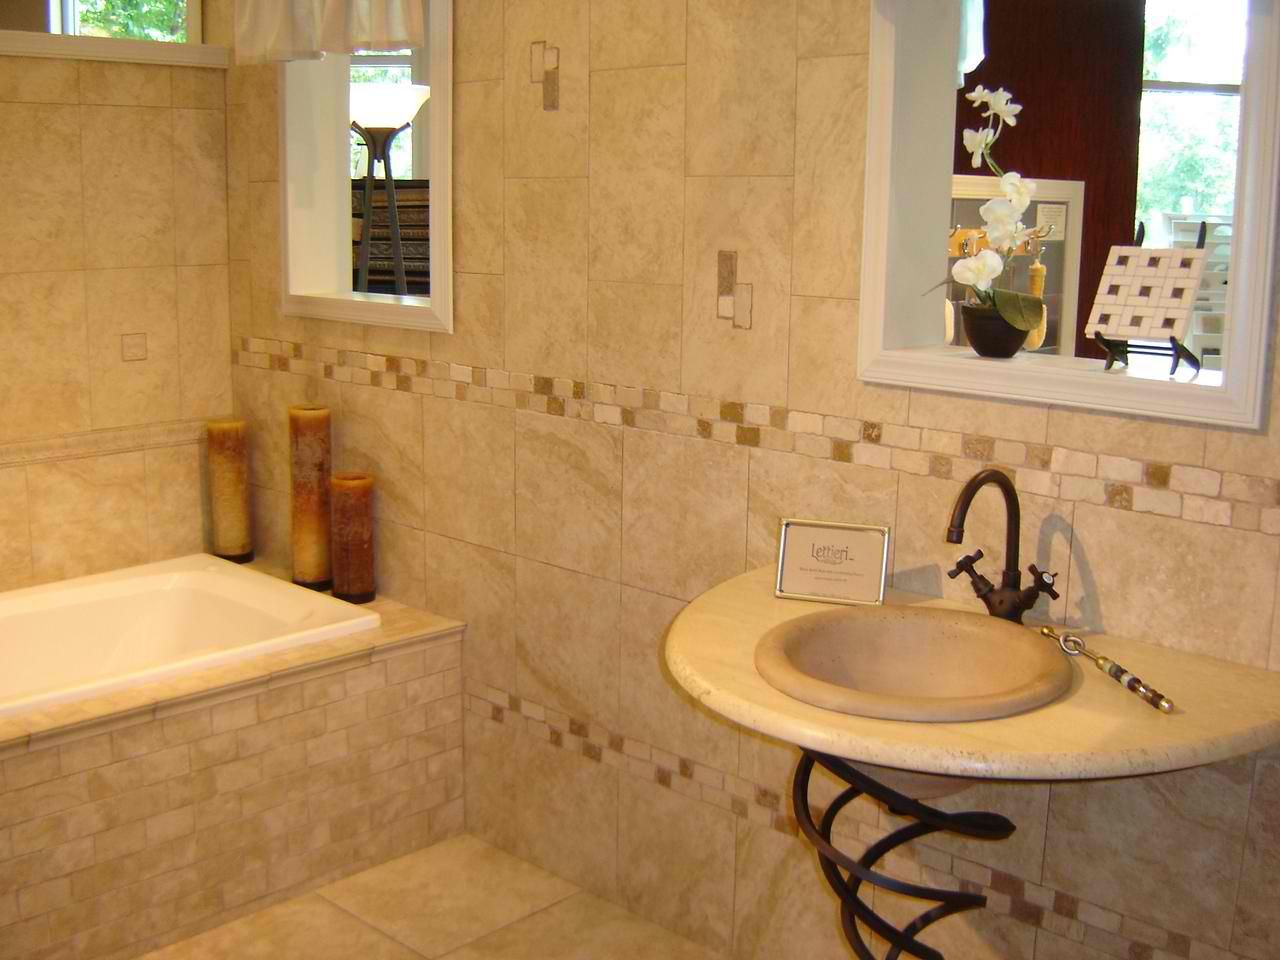 Not Using Tiles Bathroom Ideas: Tips On How To Refinish Bathroom Tiles